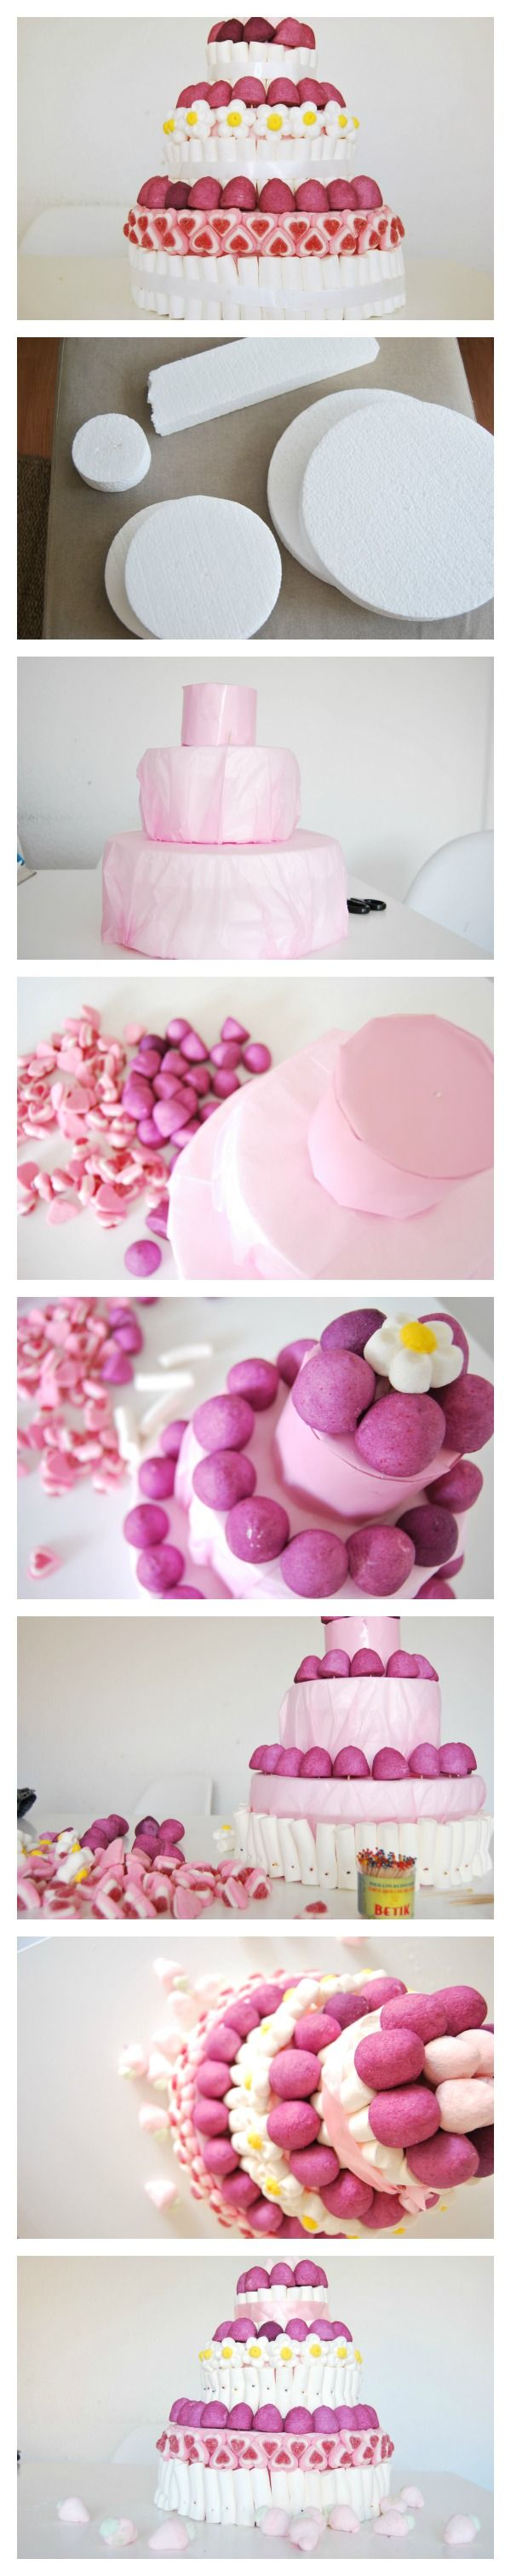 DIY weadding candy cake.  Tutorial de tarta de chuches para boda